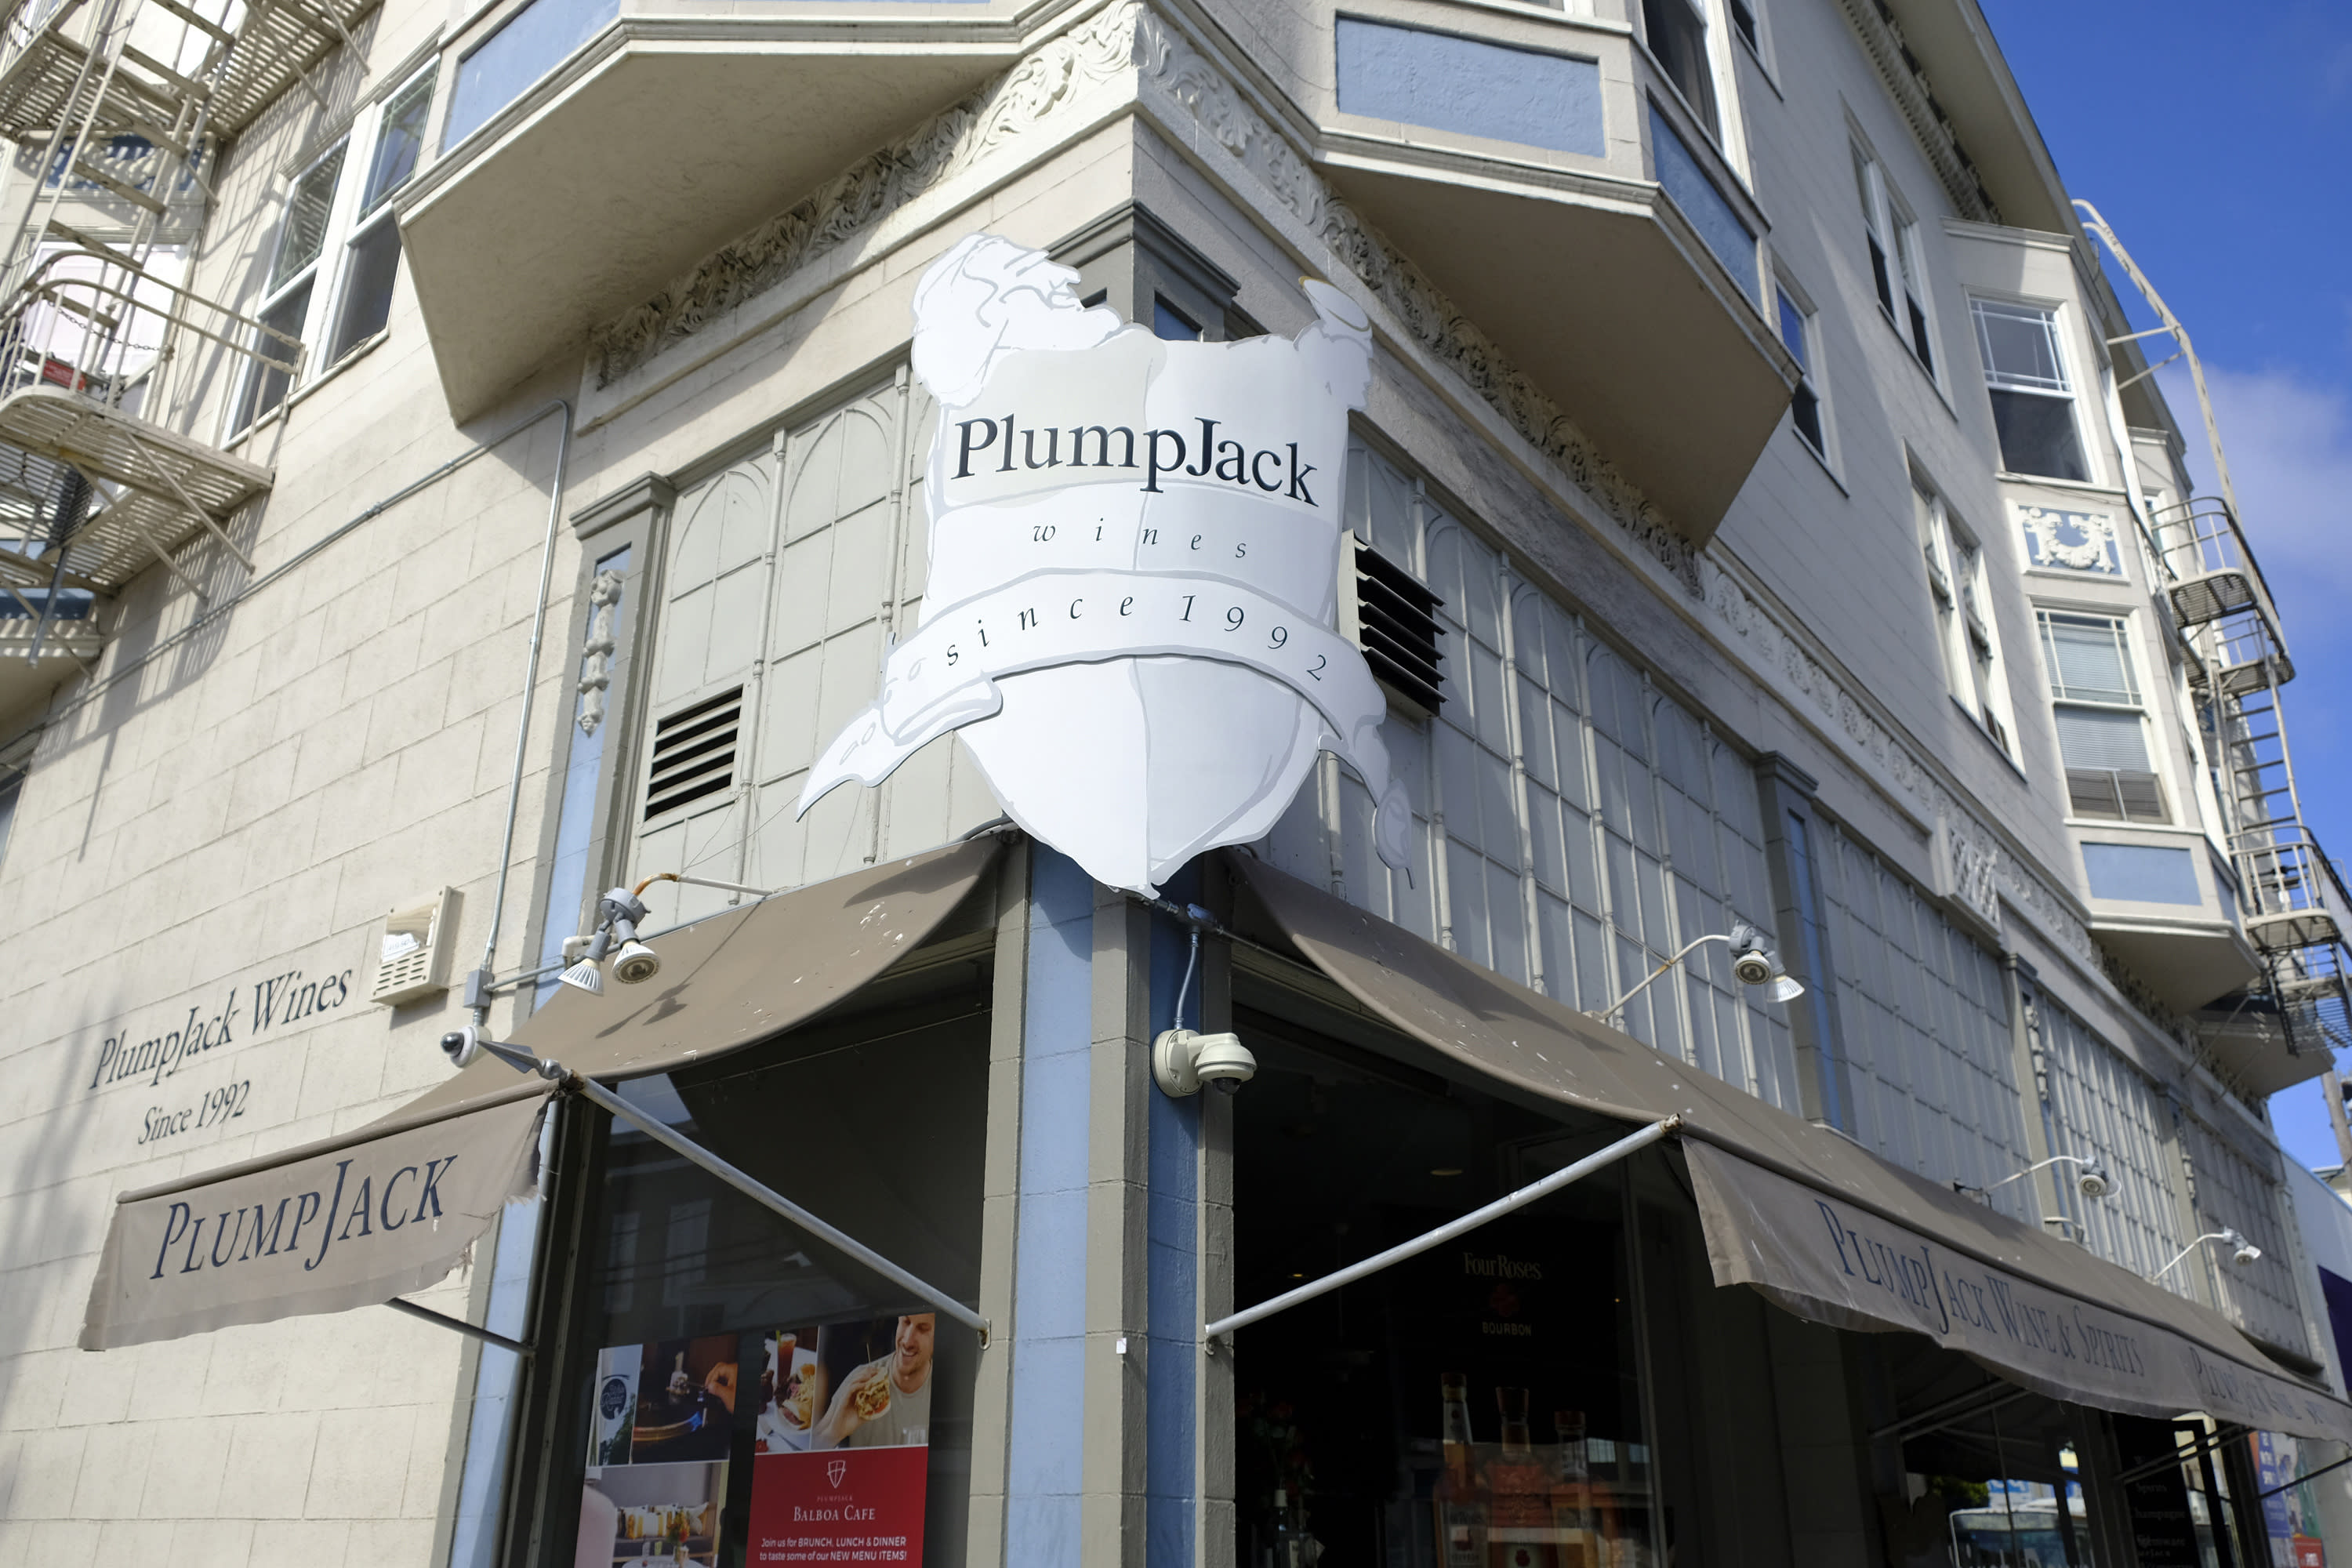 FILE - This Monday, Oct. 22, 2018, file photo shows the Plumpjack Wine & Spirits store in San Francisco, part of the Plumpjack Group collection of wineries, bars, restaurants, hotels and liquors stores. Governors, like California Gov. Gavin Newsom, who implemented shutdowns as their states responded to the coronavirus pandemic were among millions of beneficiaries of the loan program created to help small businesses, data released Monday, July 6, 2020 show. PlumpJack Management Group, LLC, Newsom's winery and hospitality company he founded, received a loan worth $150,000 to $350,000. (AP Photo/Eric Risberg, File)